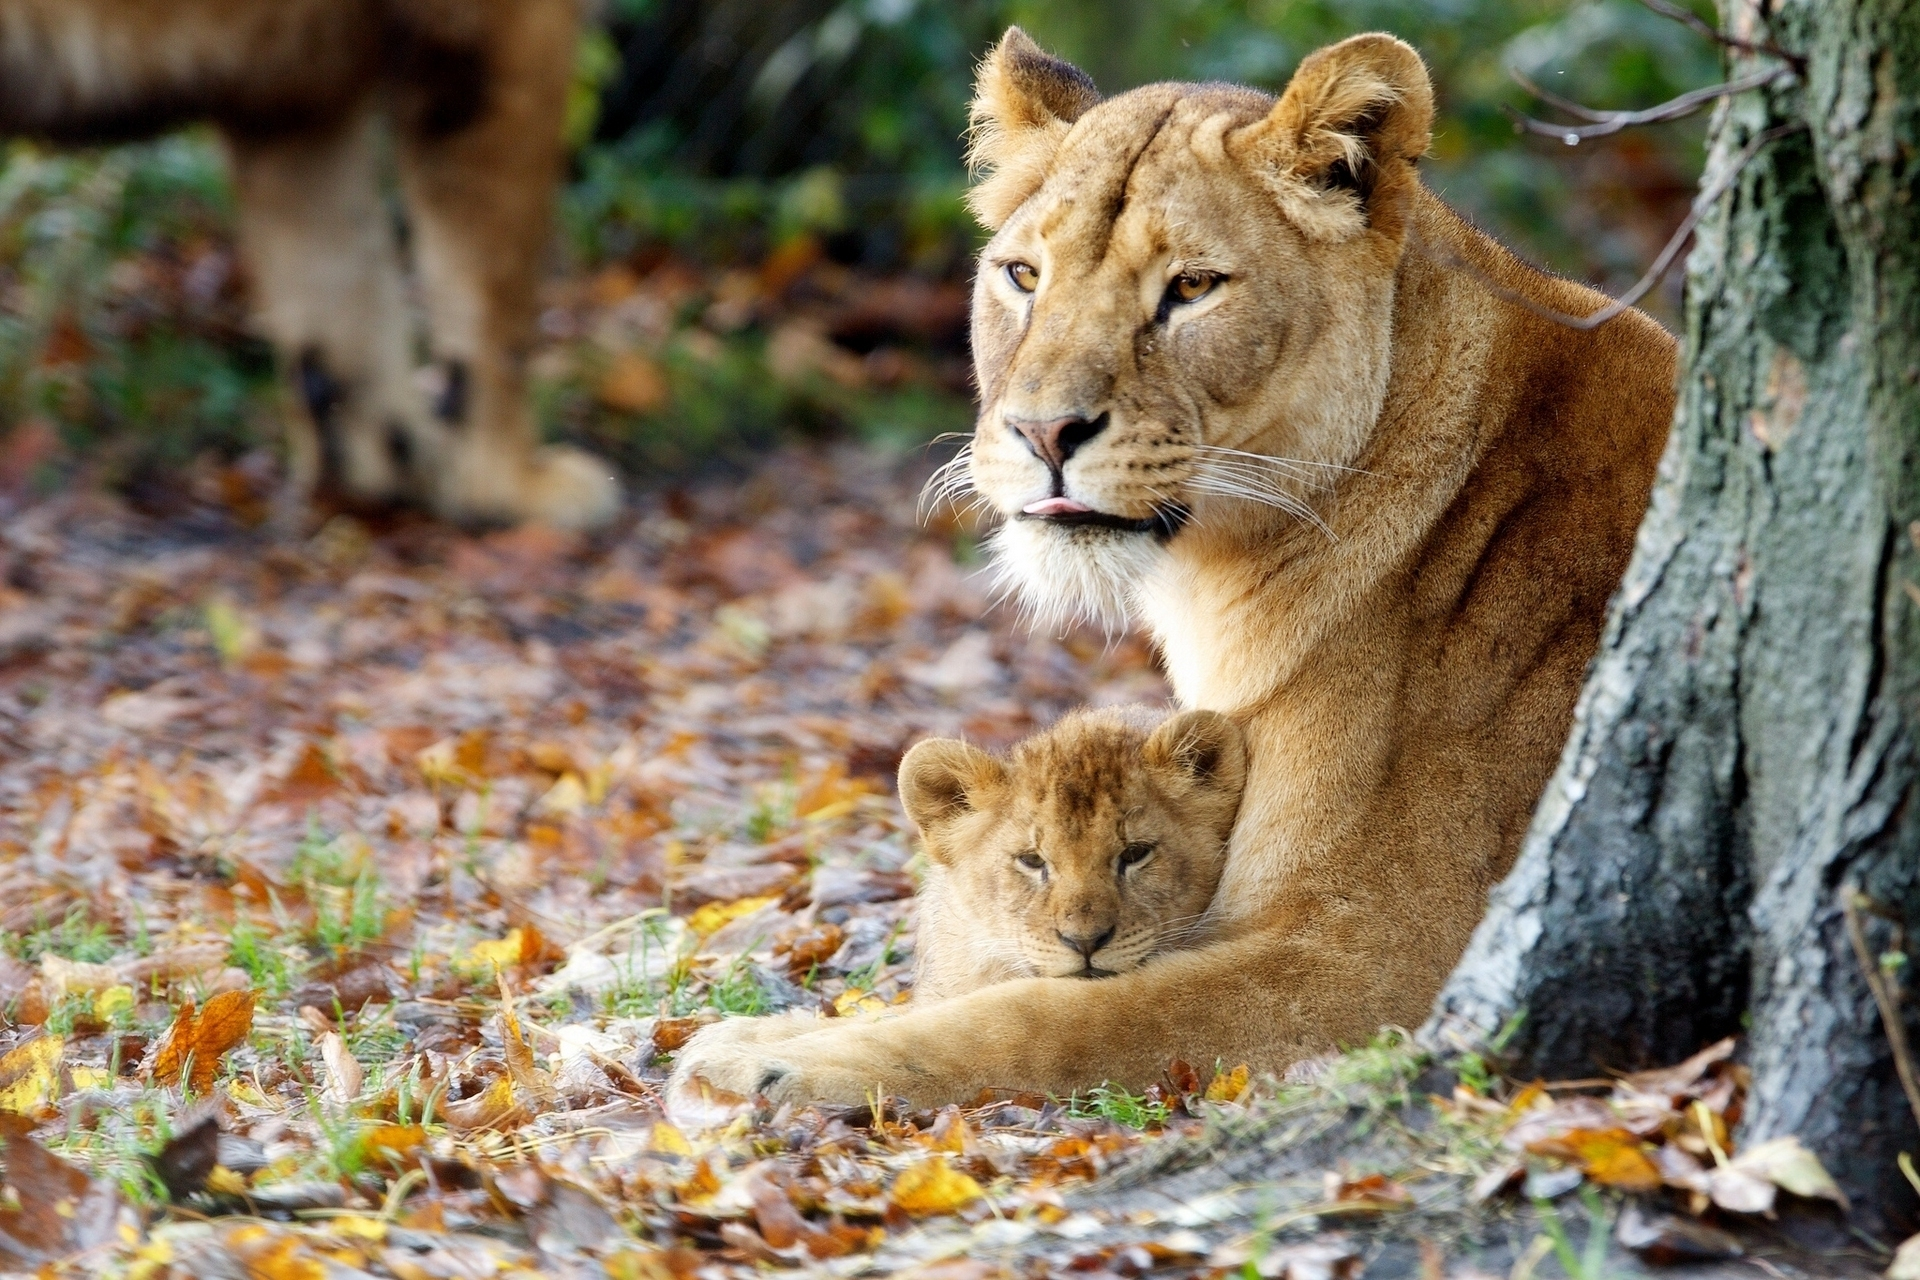 116853 download wallpaper Animals, Lioness, Young, Joey, Grass, Sit screensavers and pictures for free